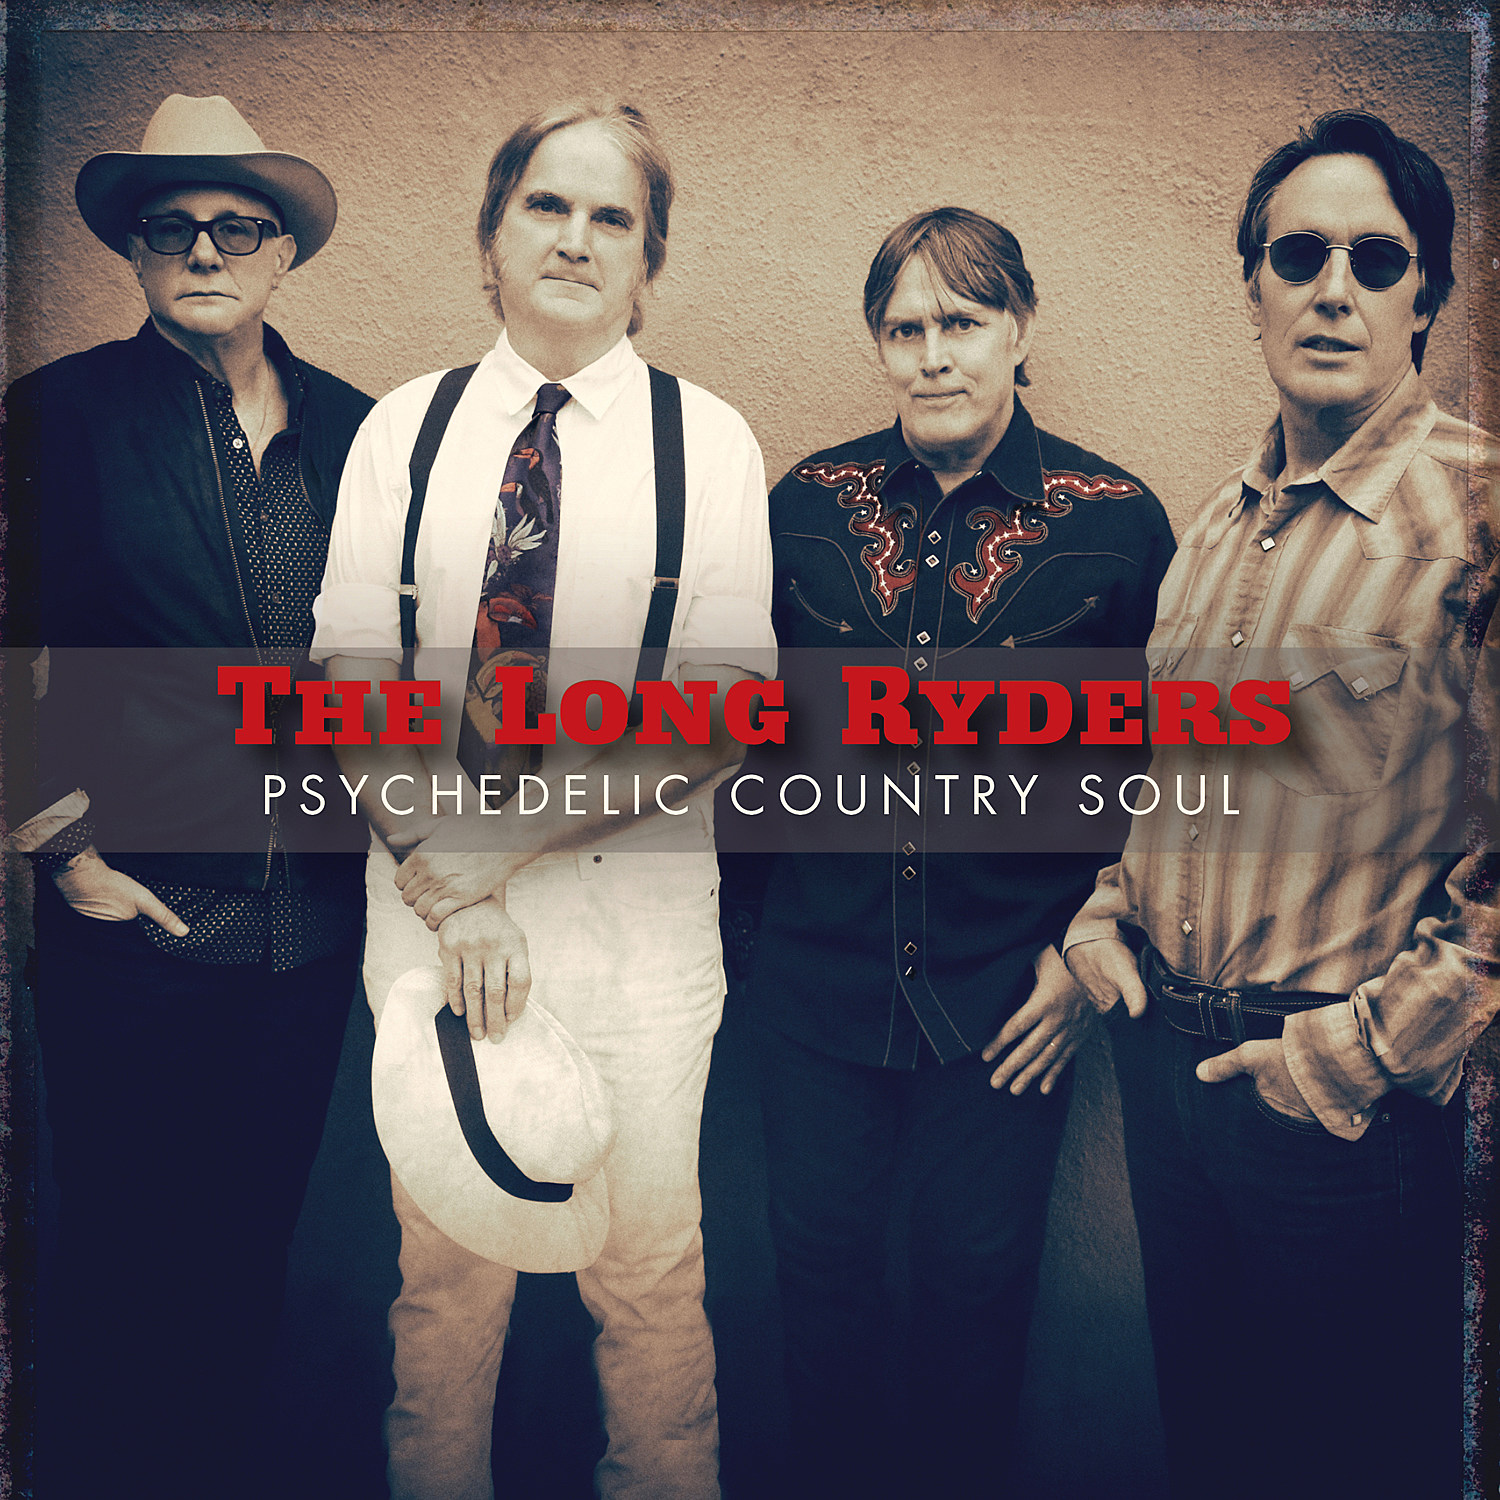 long-ryders-psychedelic-country-soul